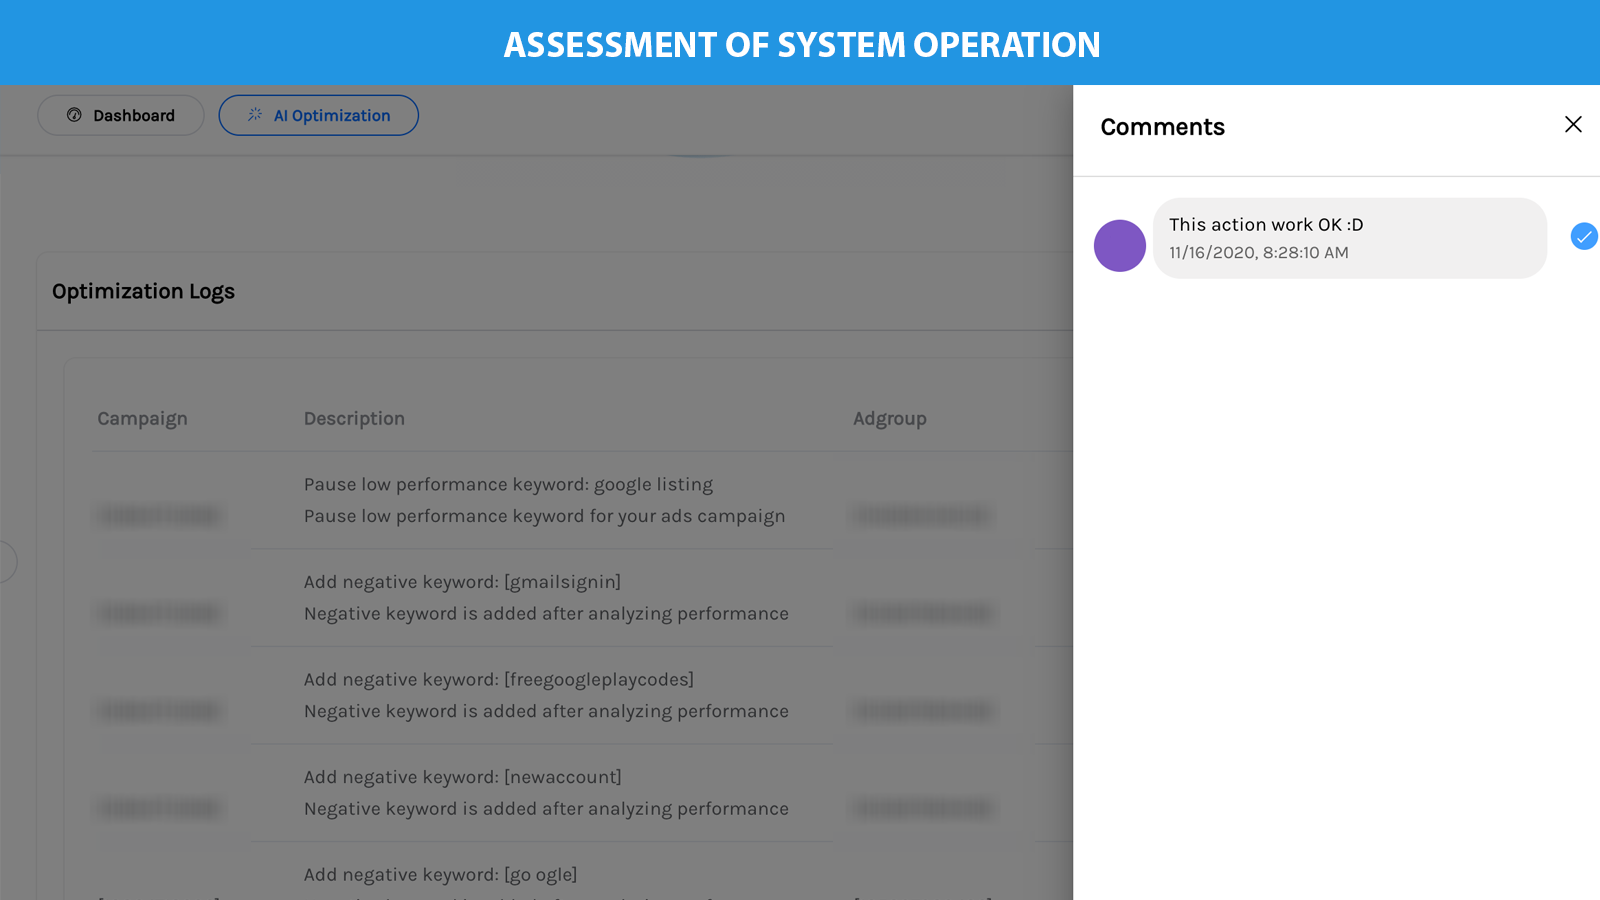 Performance evaluation of the system